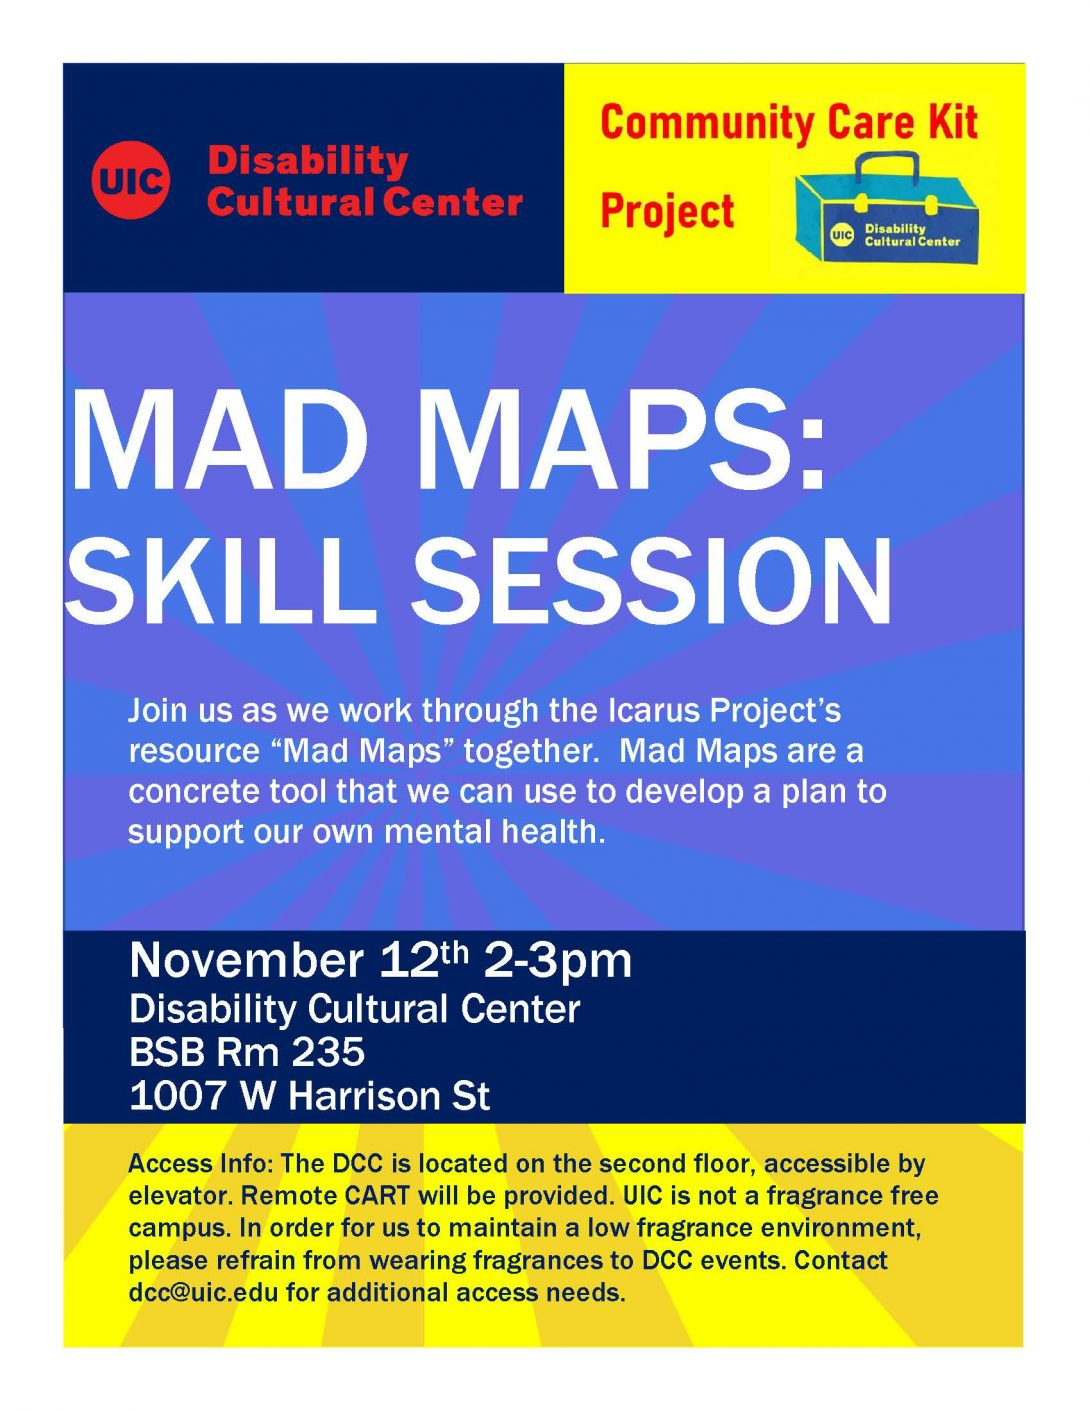 Mad Maps: Skill Session flyer